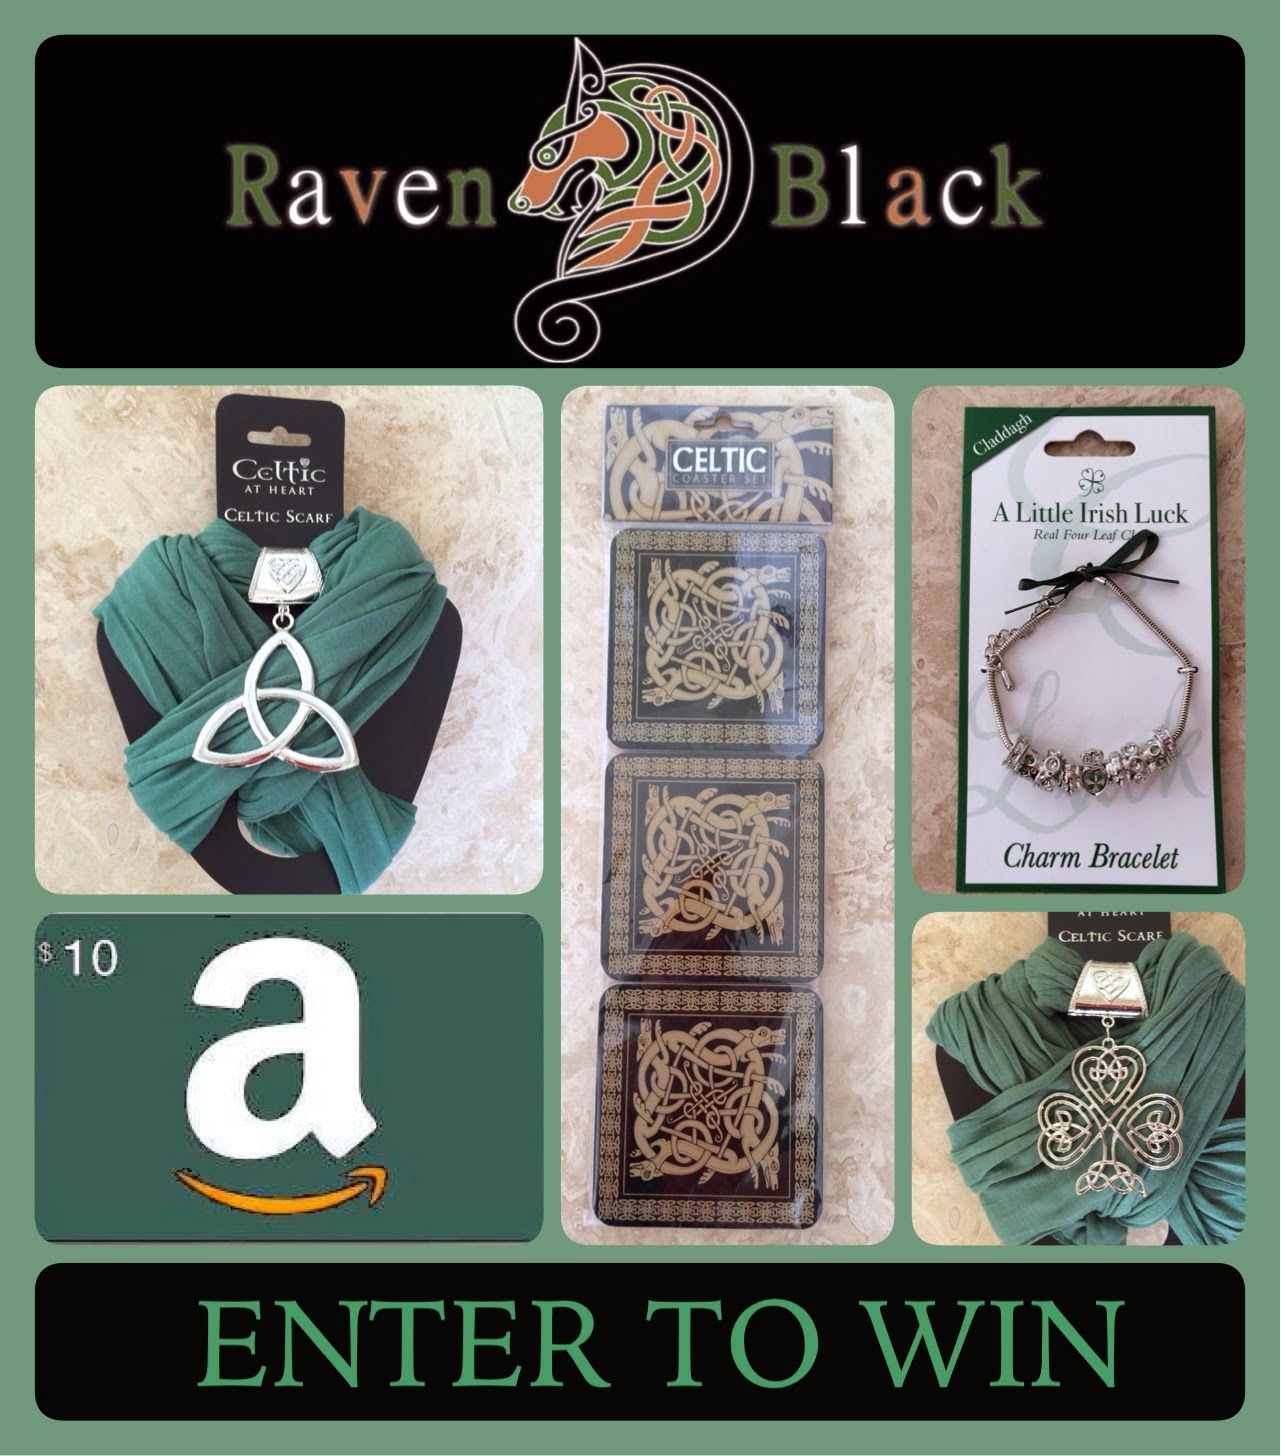 http://ravenandblack.blogspot.ie/2014/03/the-great-st-patricks-day-giveaway.html